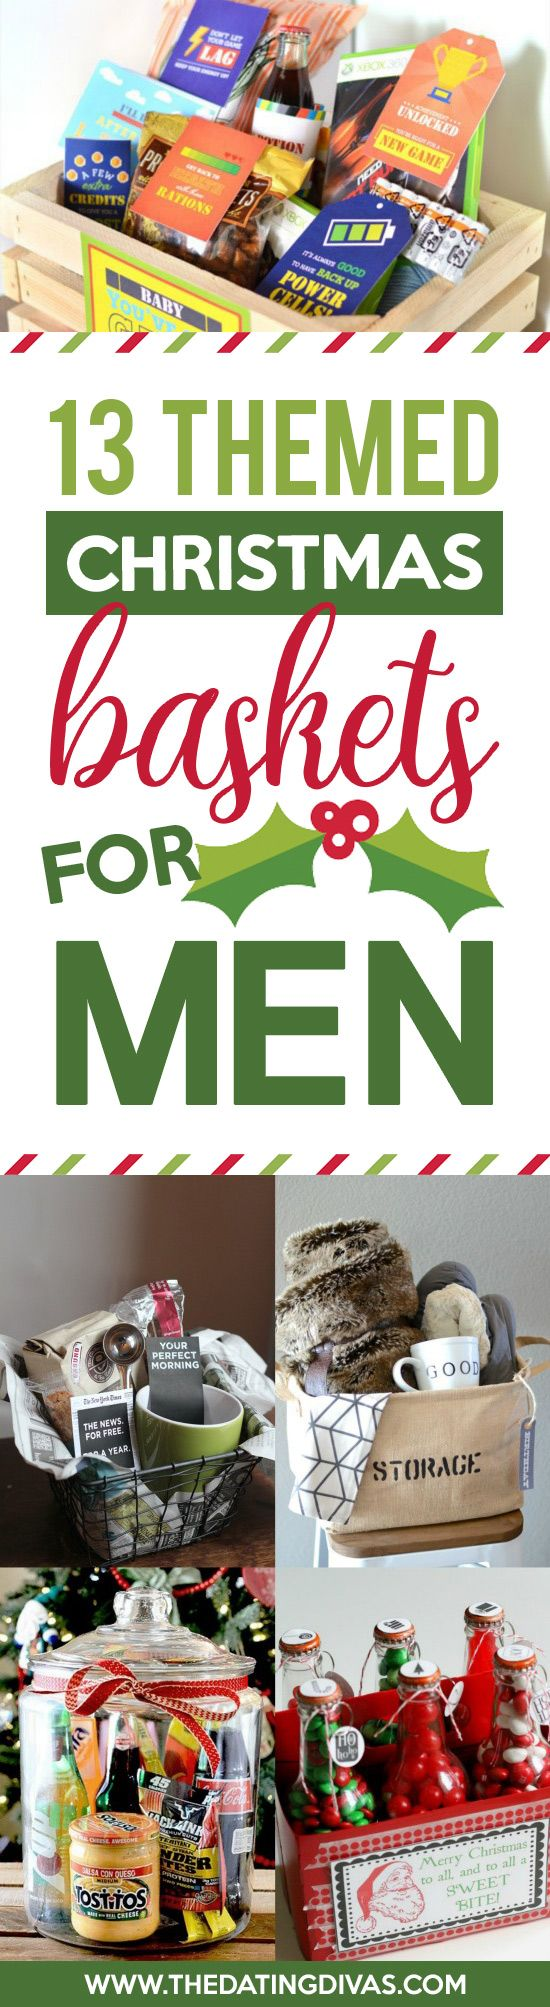 Mens christmas gift ideas pinterest